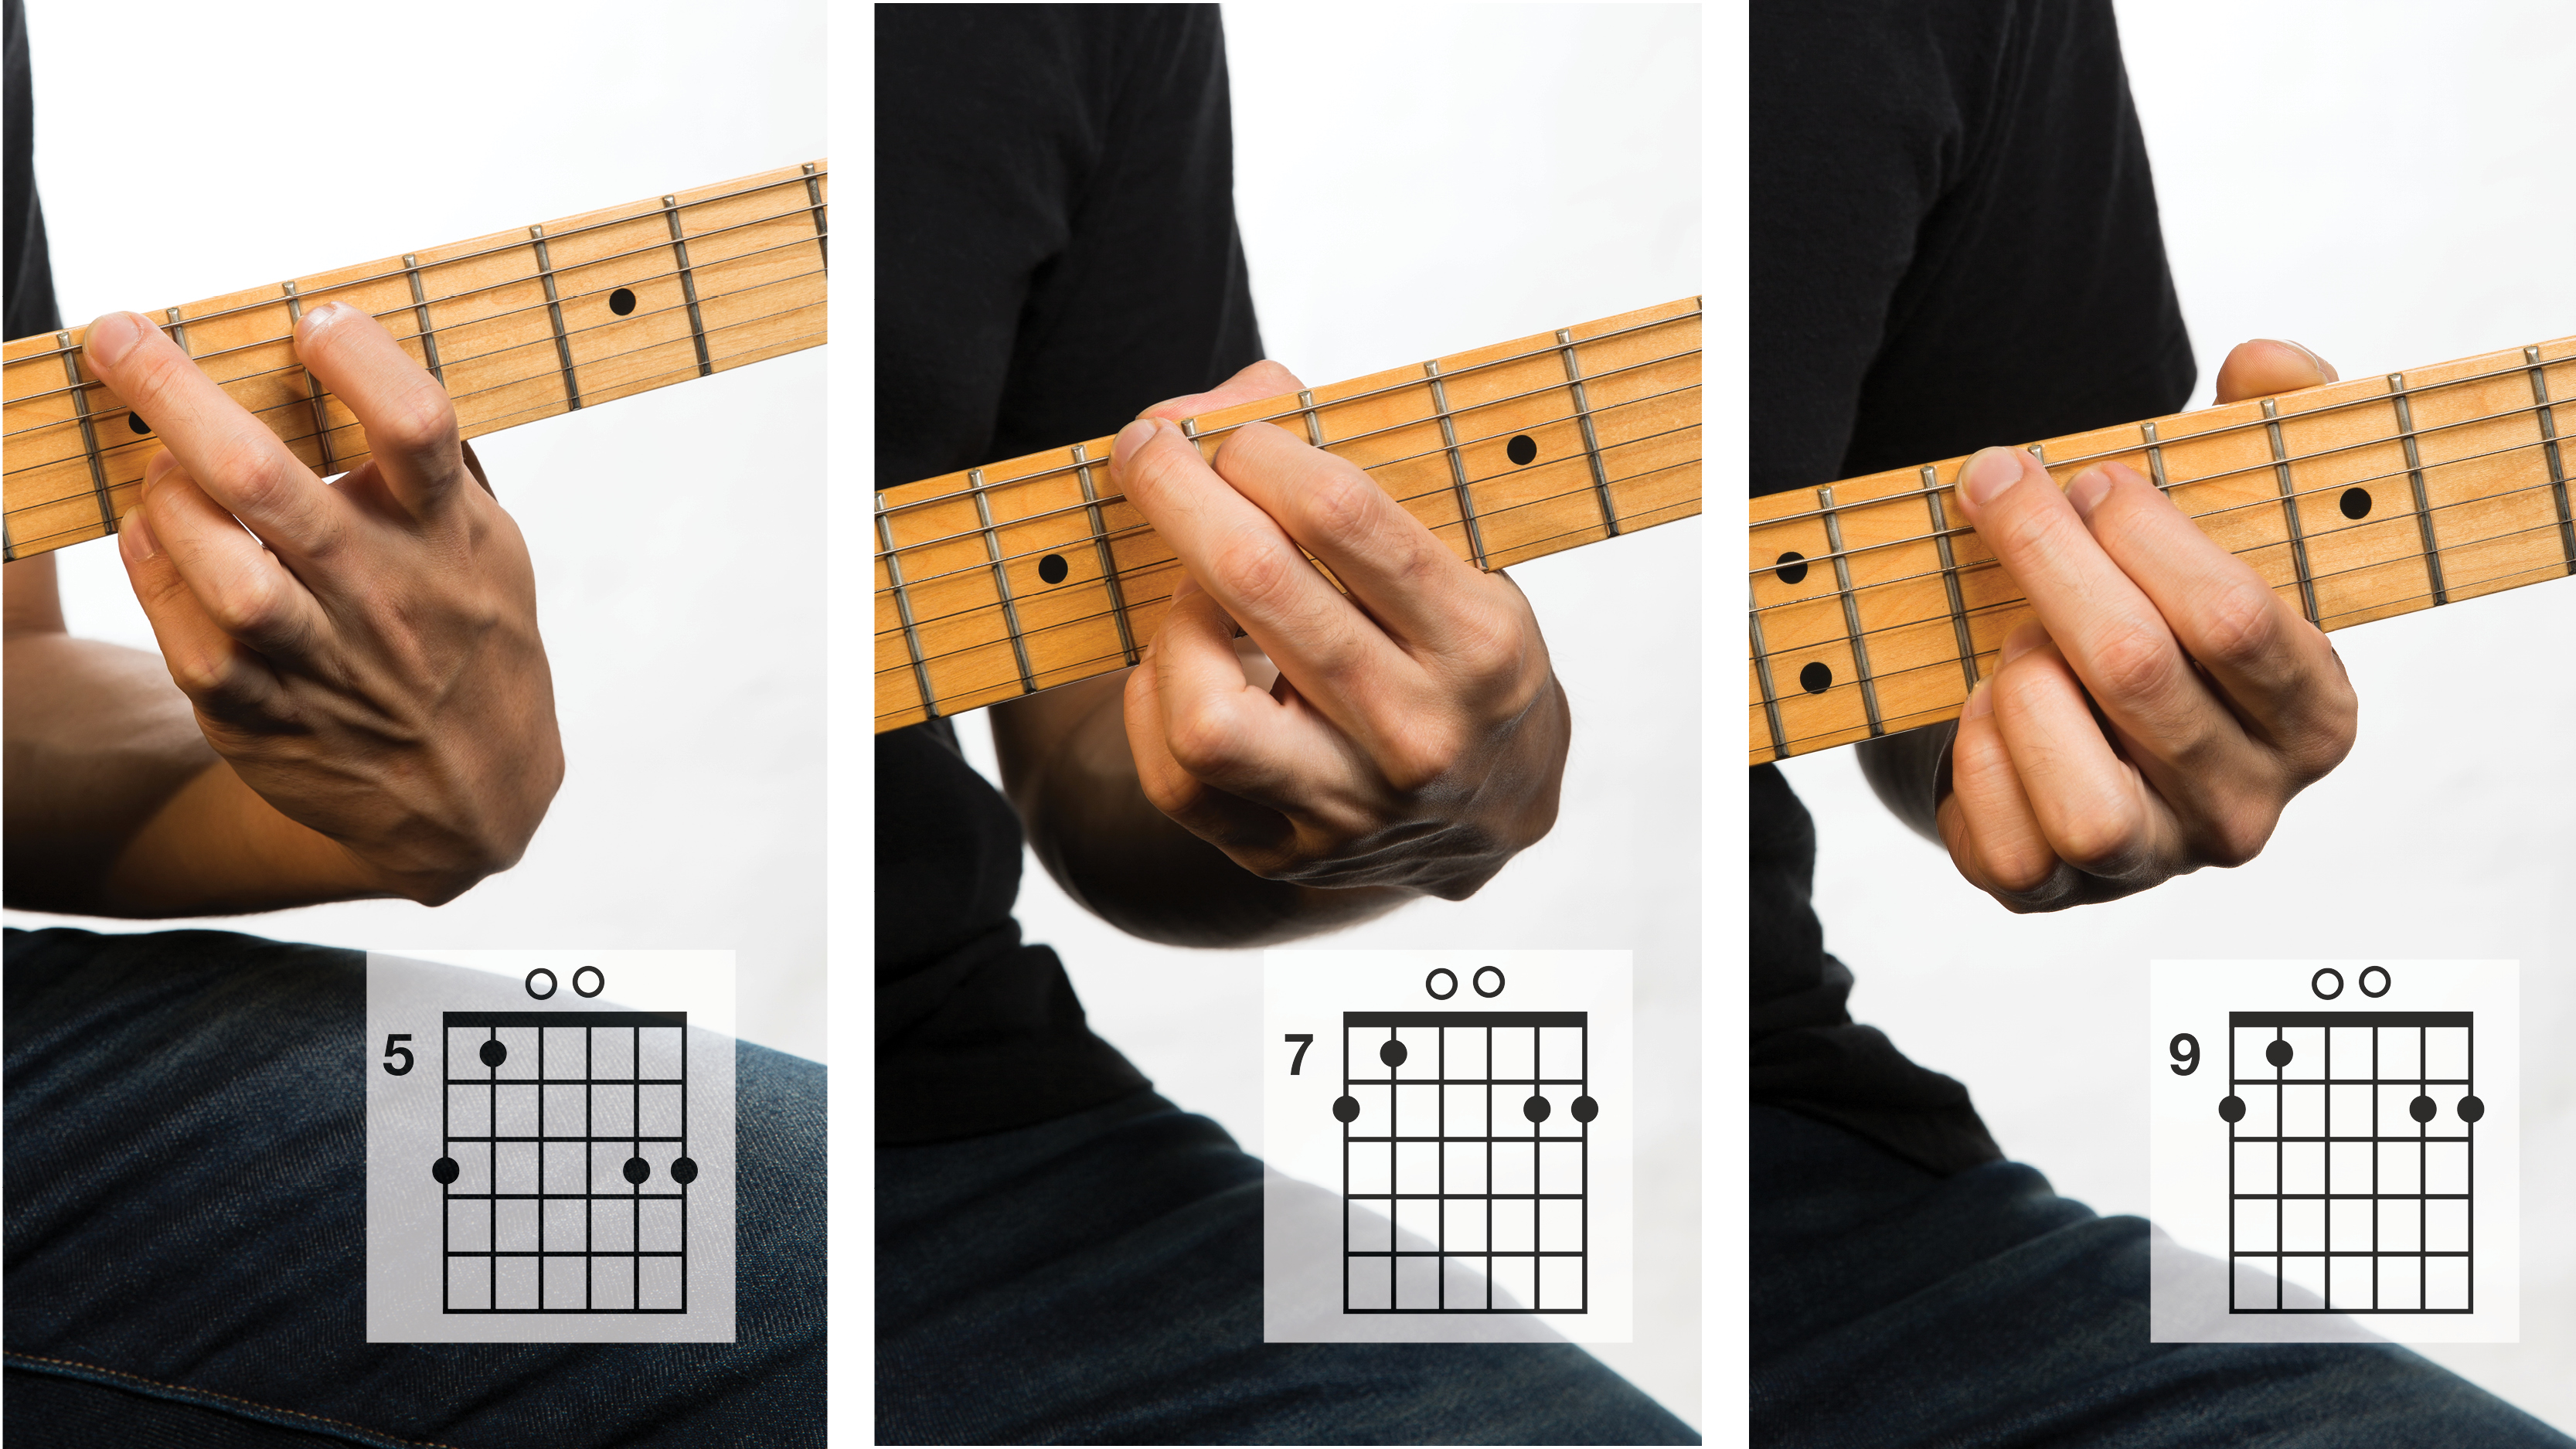 Modified B minor, modified C major and modified D major chords